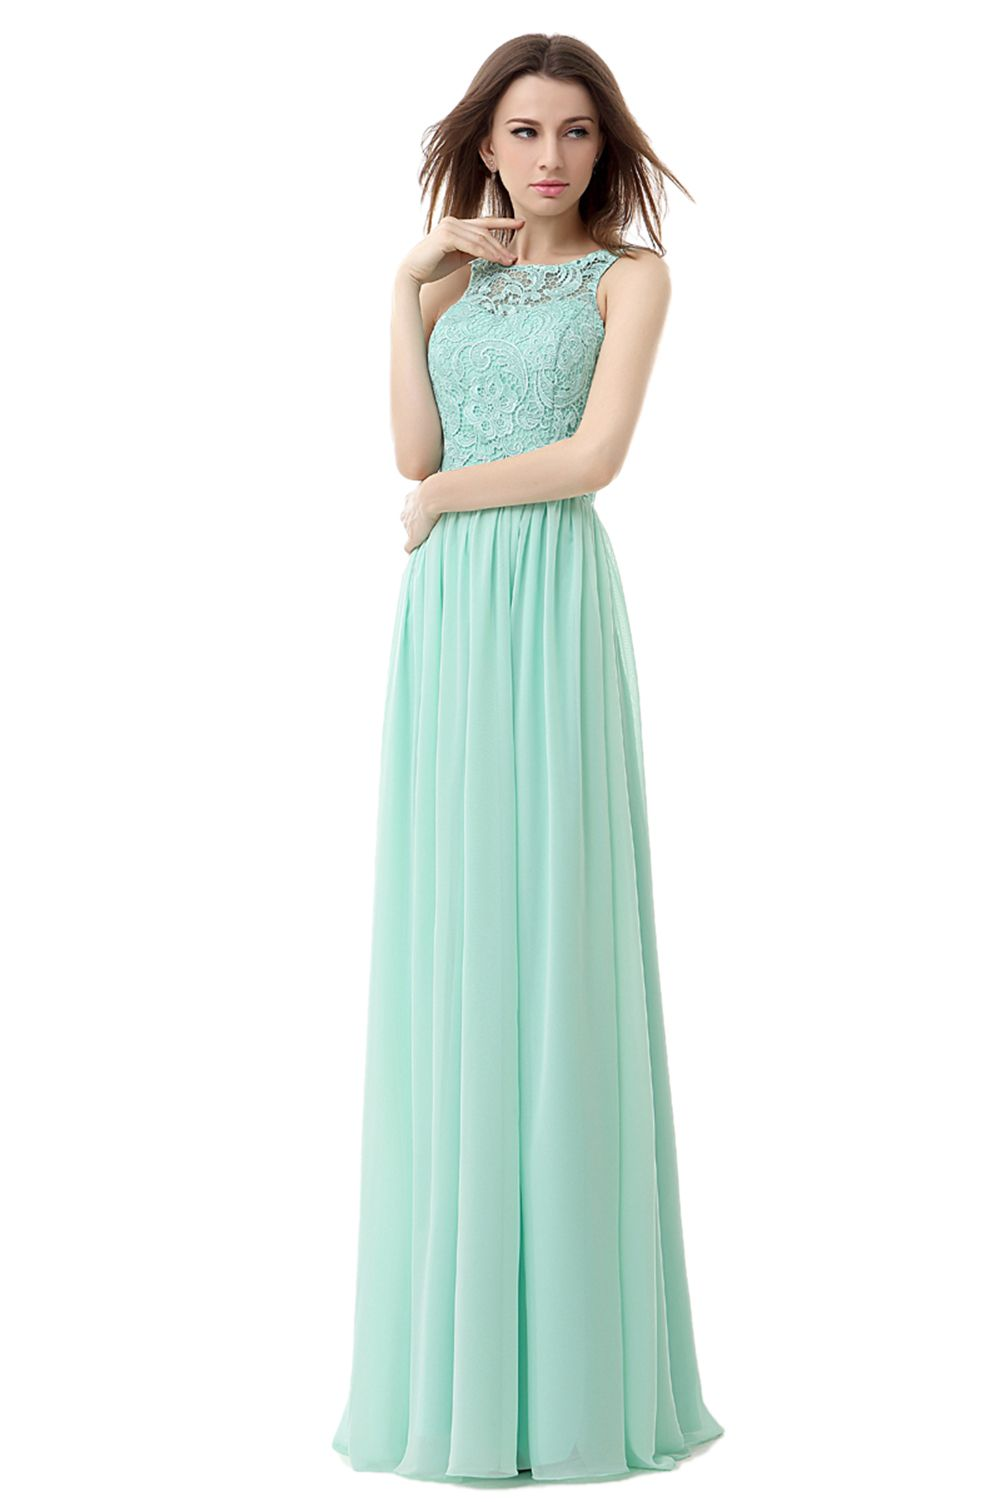 Luxury turquoise all over beaded mermaid sleeveless illusion boat ikerenwedding womens straps lace chiffon bridesmaid dress formal party gown ombrellifo Gallery